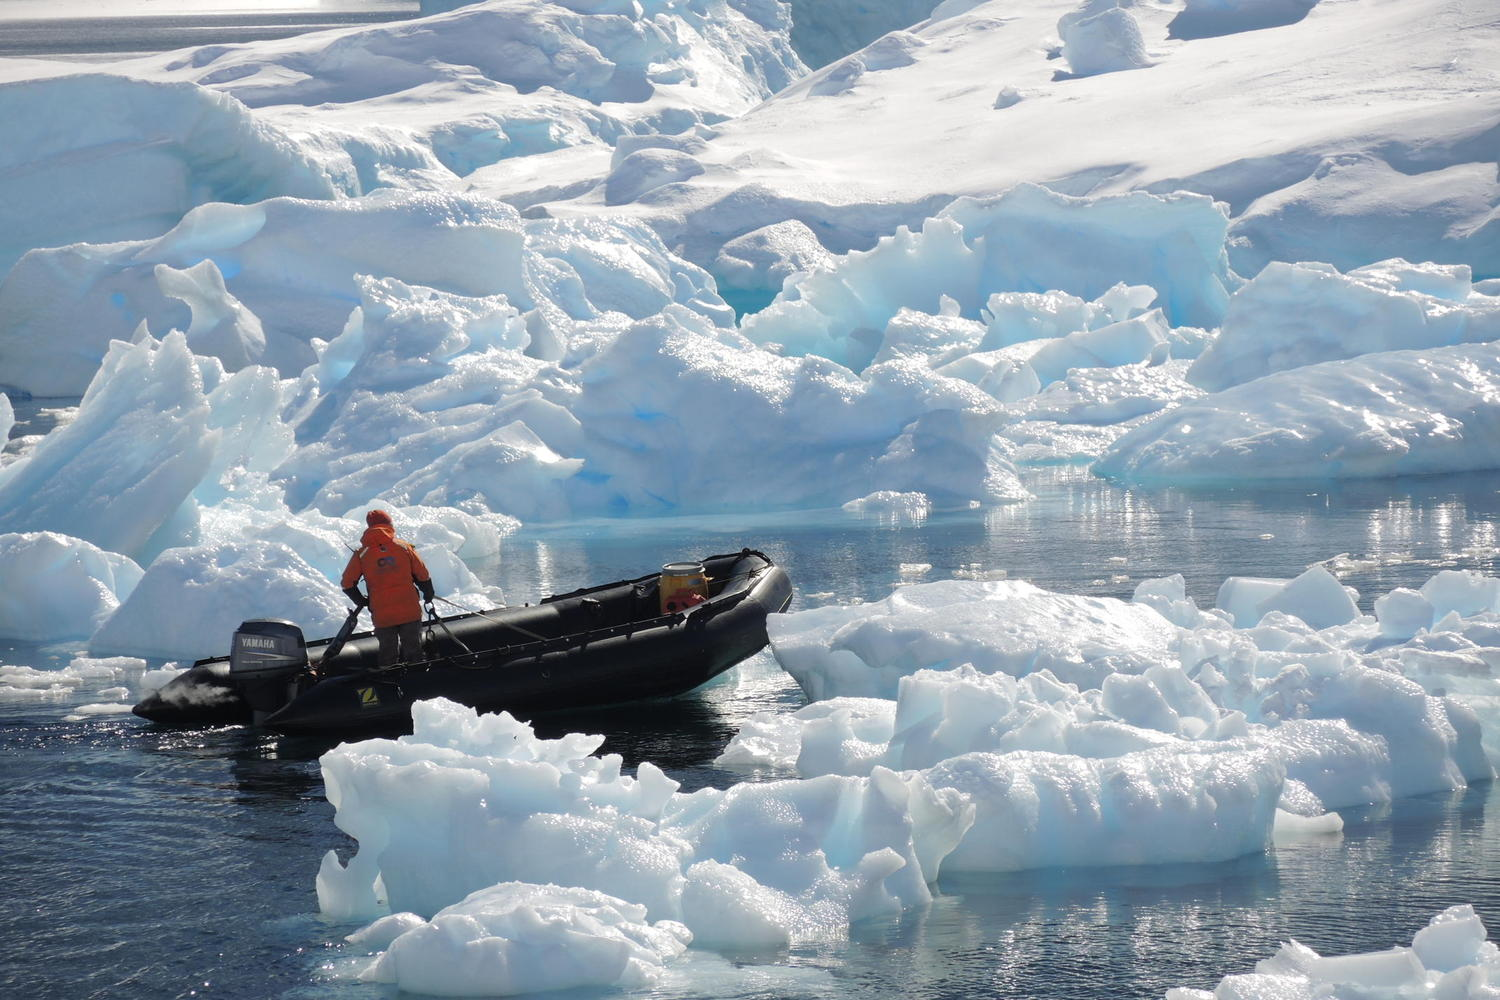 Zodiac navigating through the icebergs early in the season off Danco Island